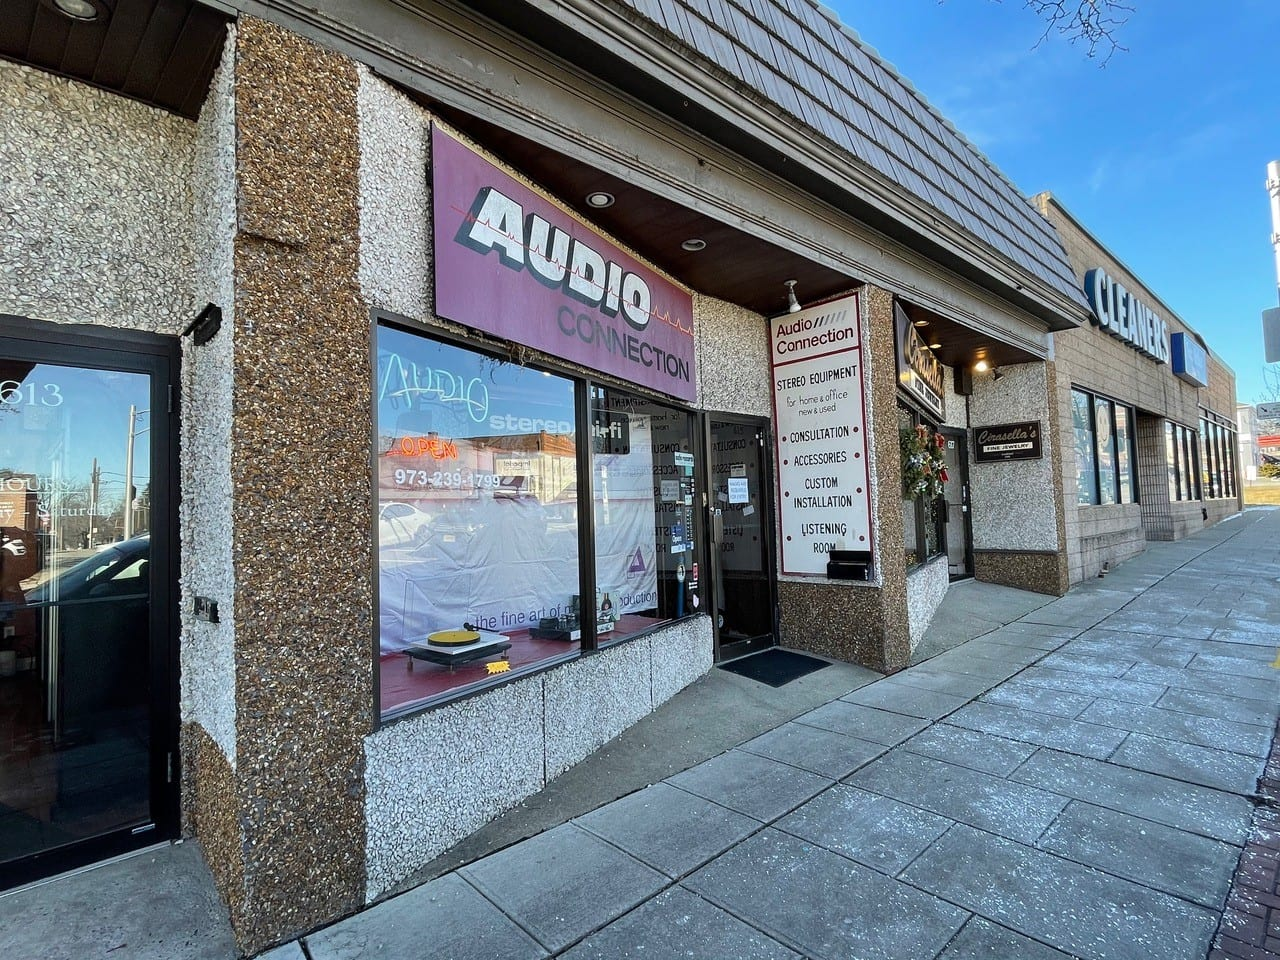 Audio Connection | A Visit to a Local Audio Shop by your Roving Reporter Dr. Matt Clott